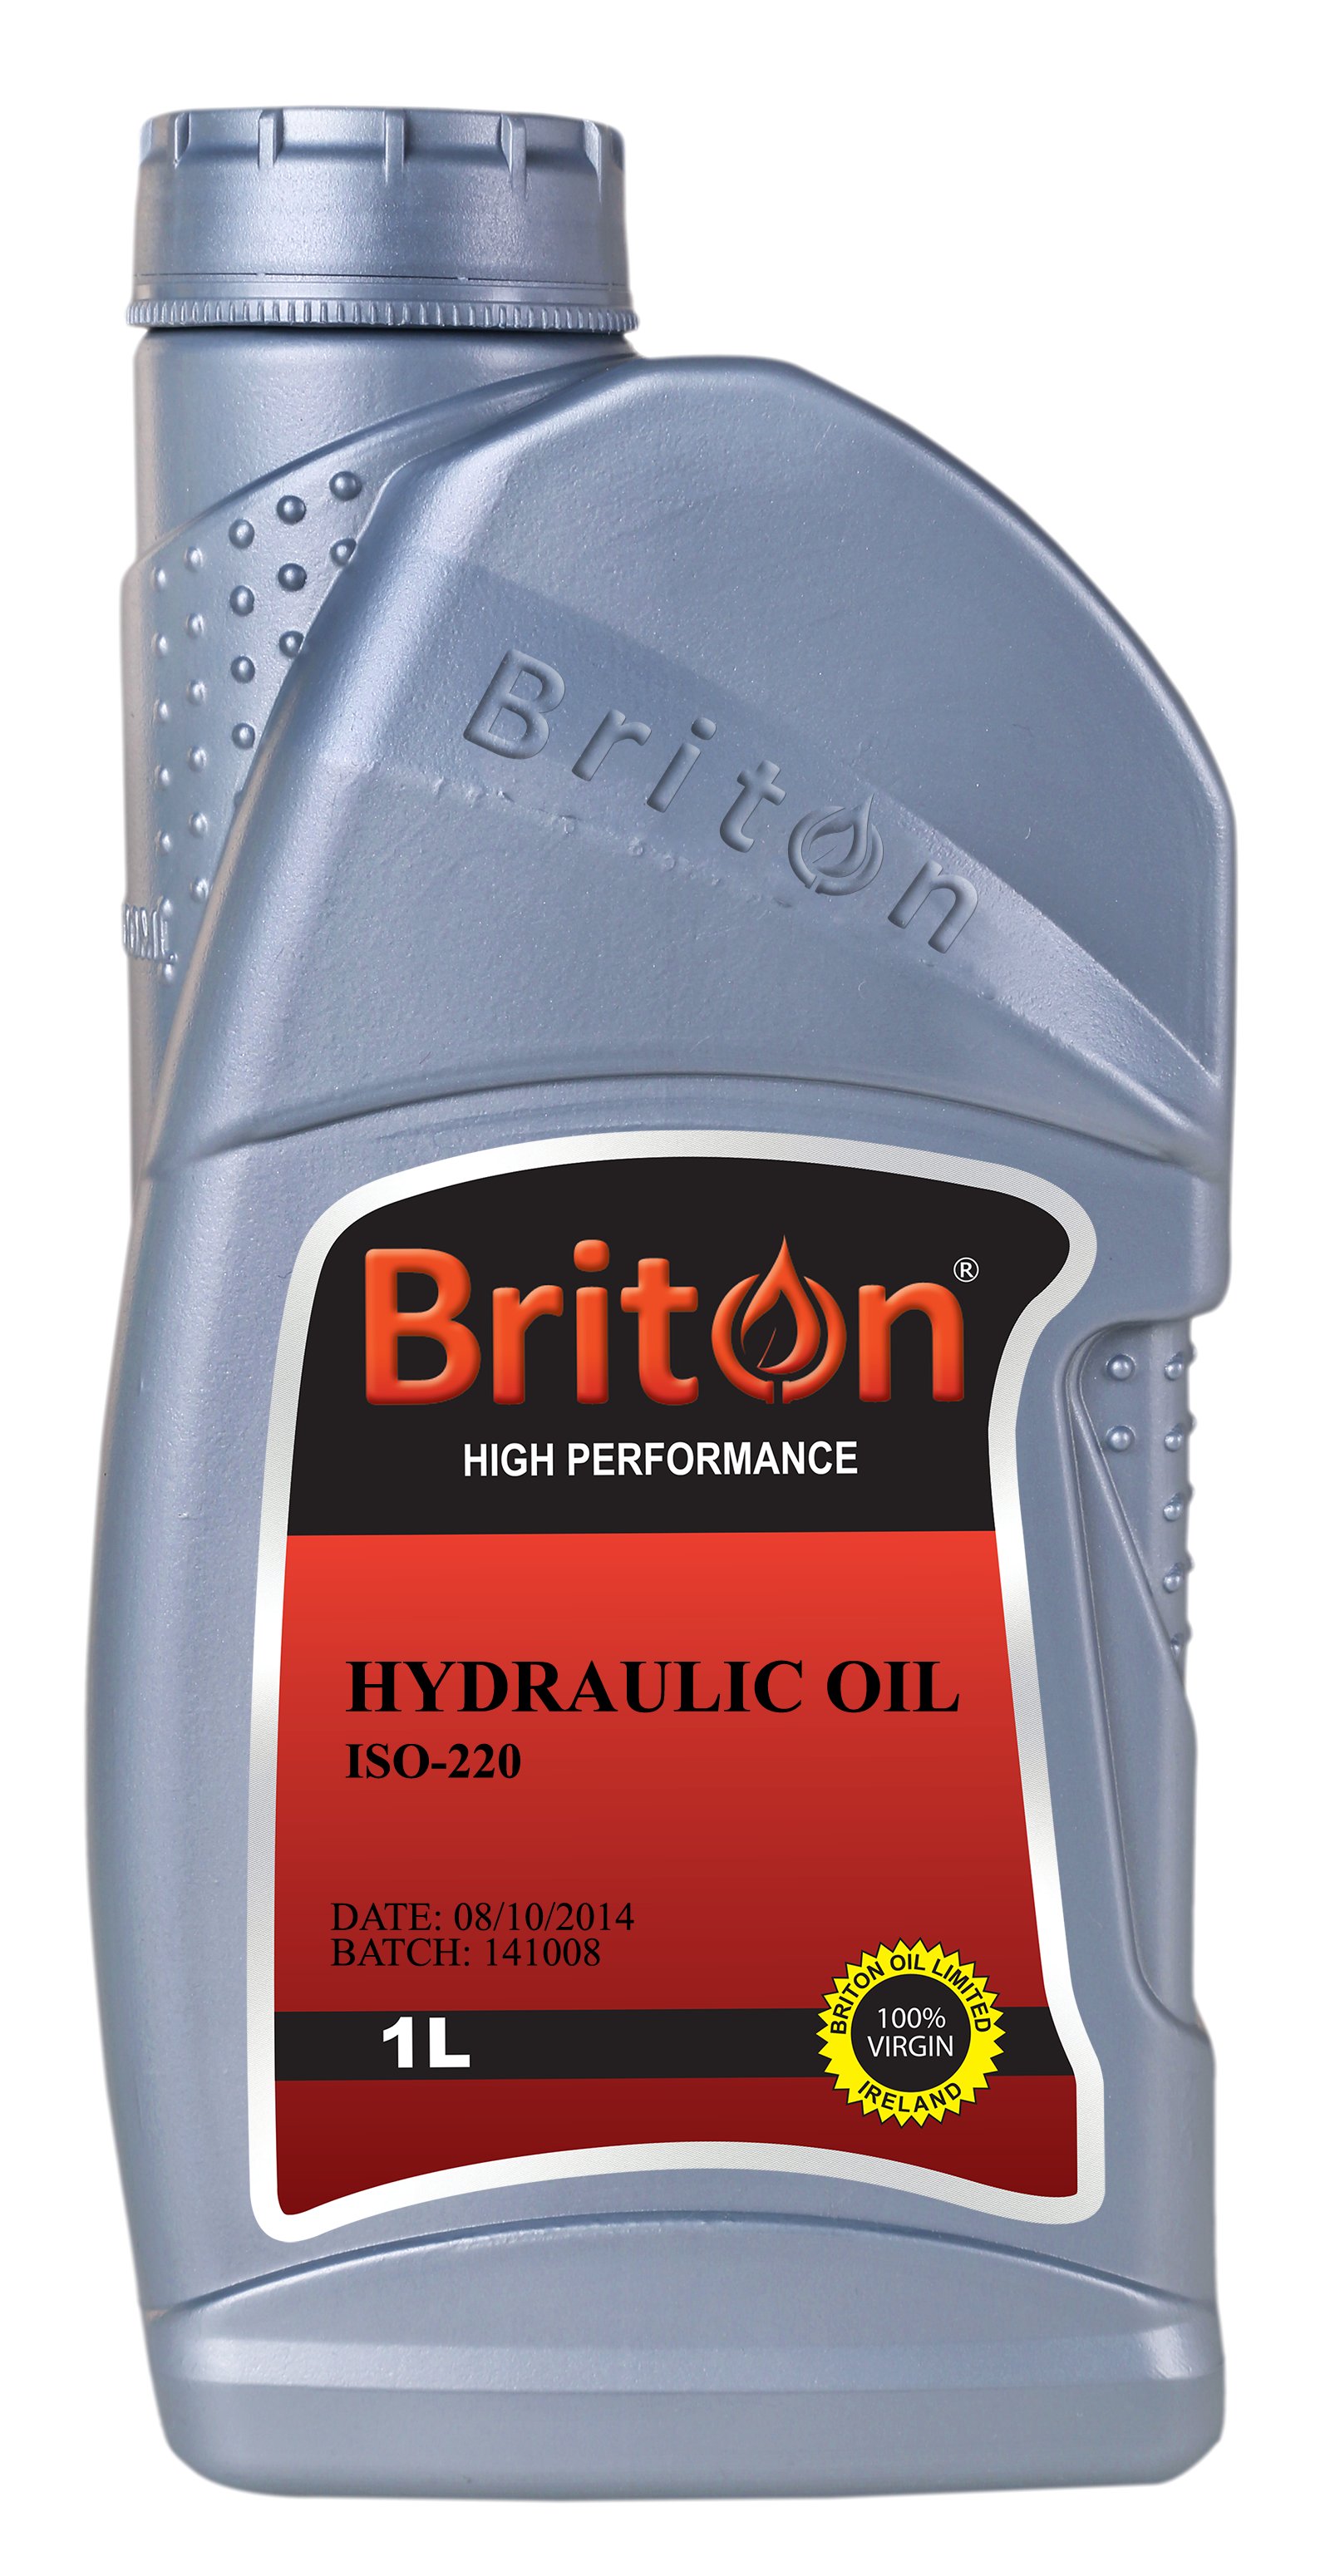 Briton Hydraulic Oil ISO 220 are blended from solvent